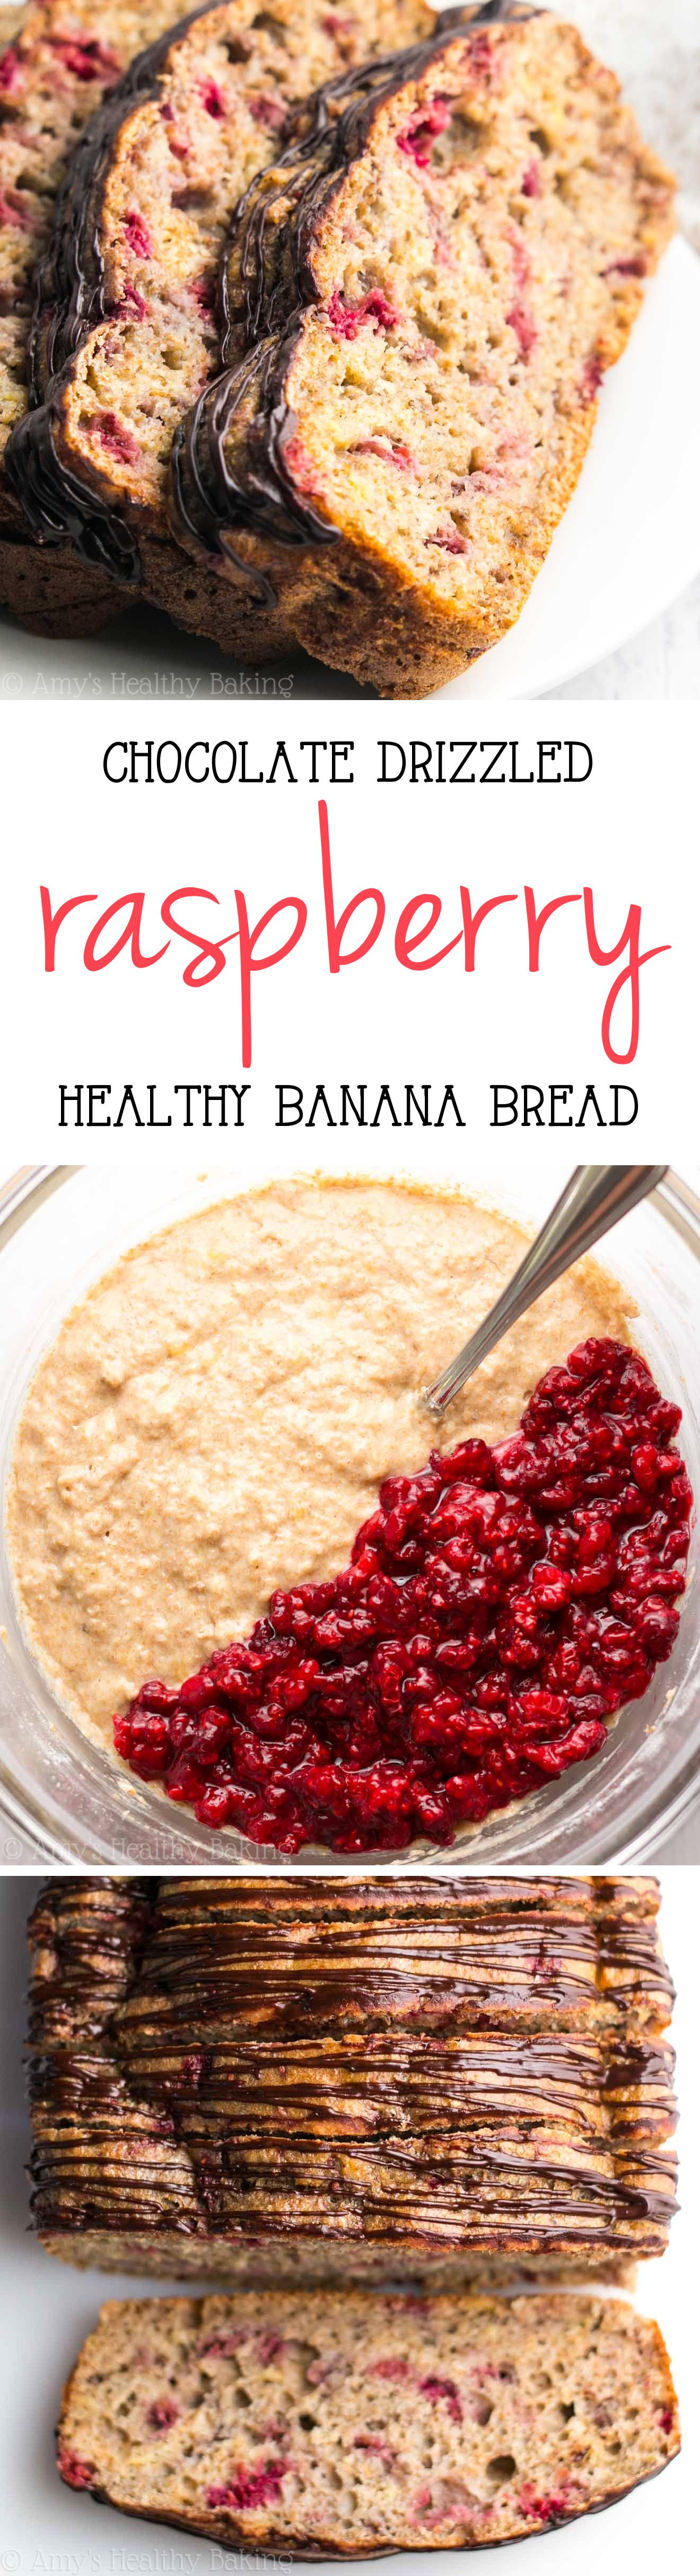 Healthy Chocolate Drizzled Raspberry Banana Bread This